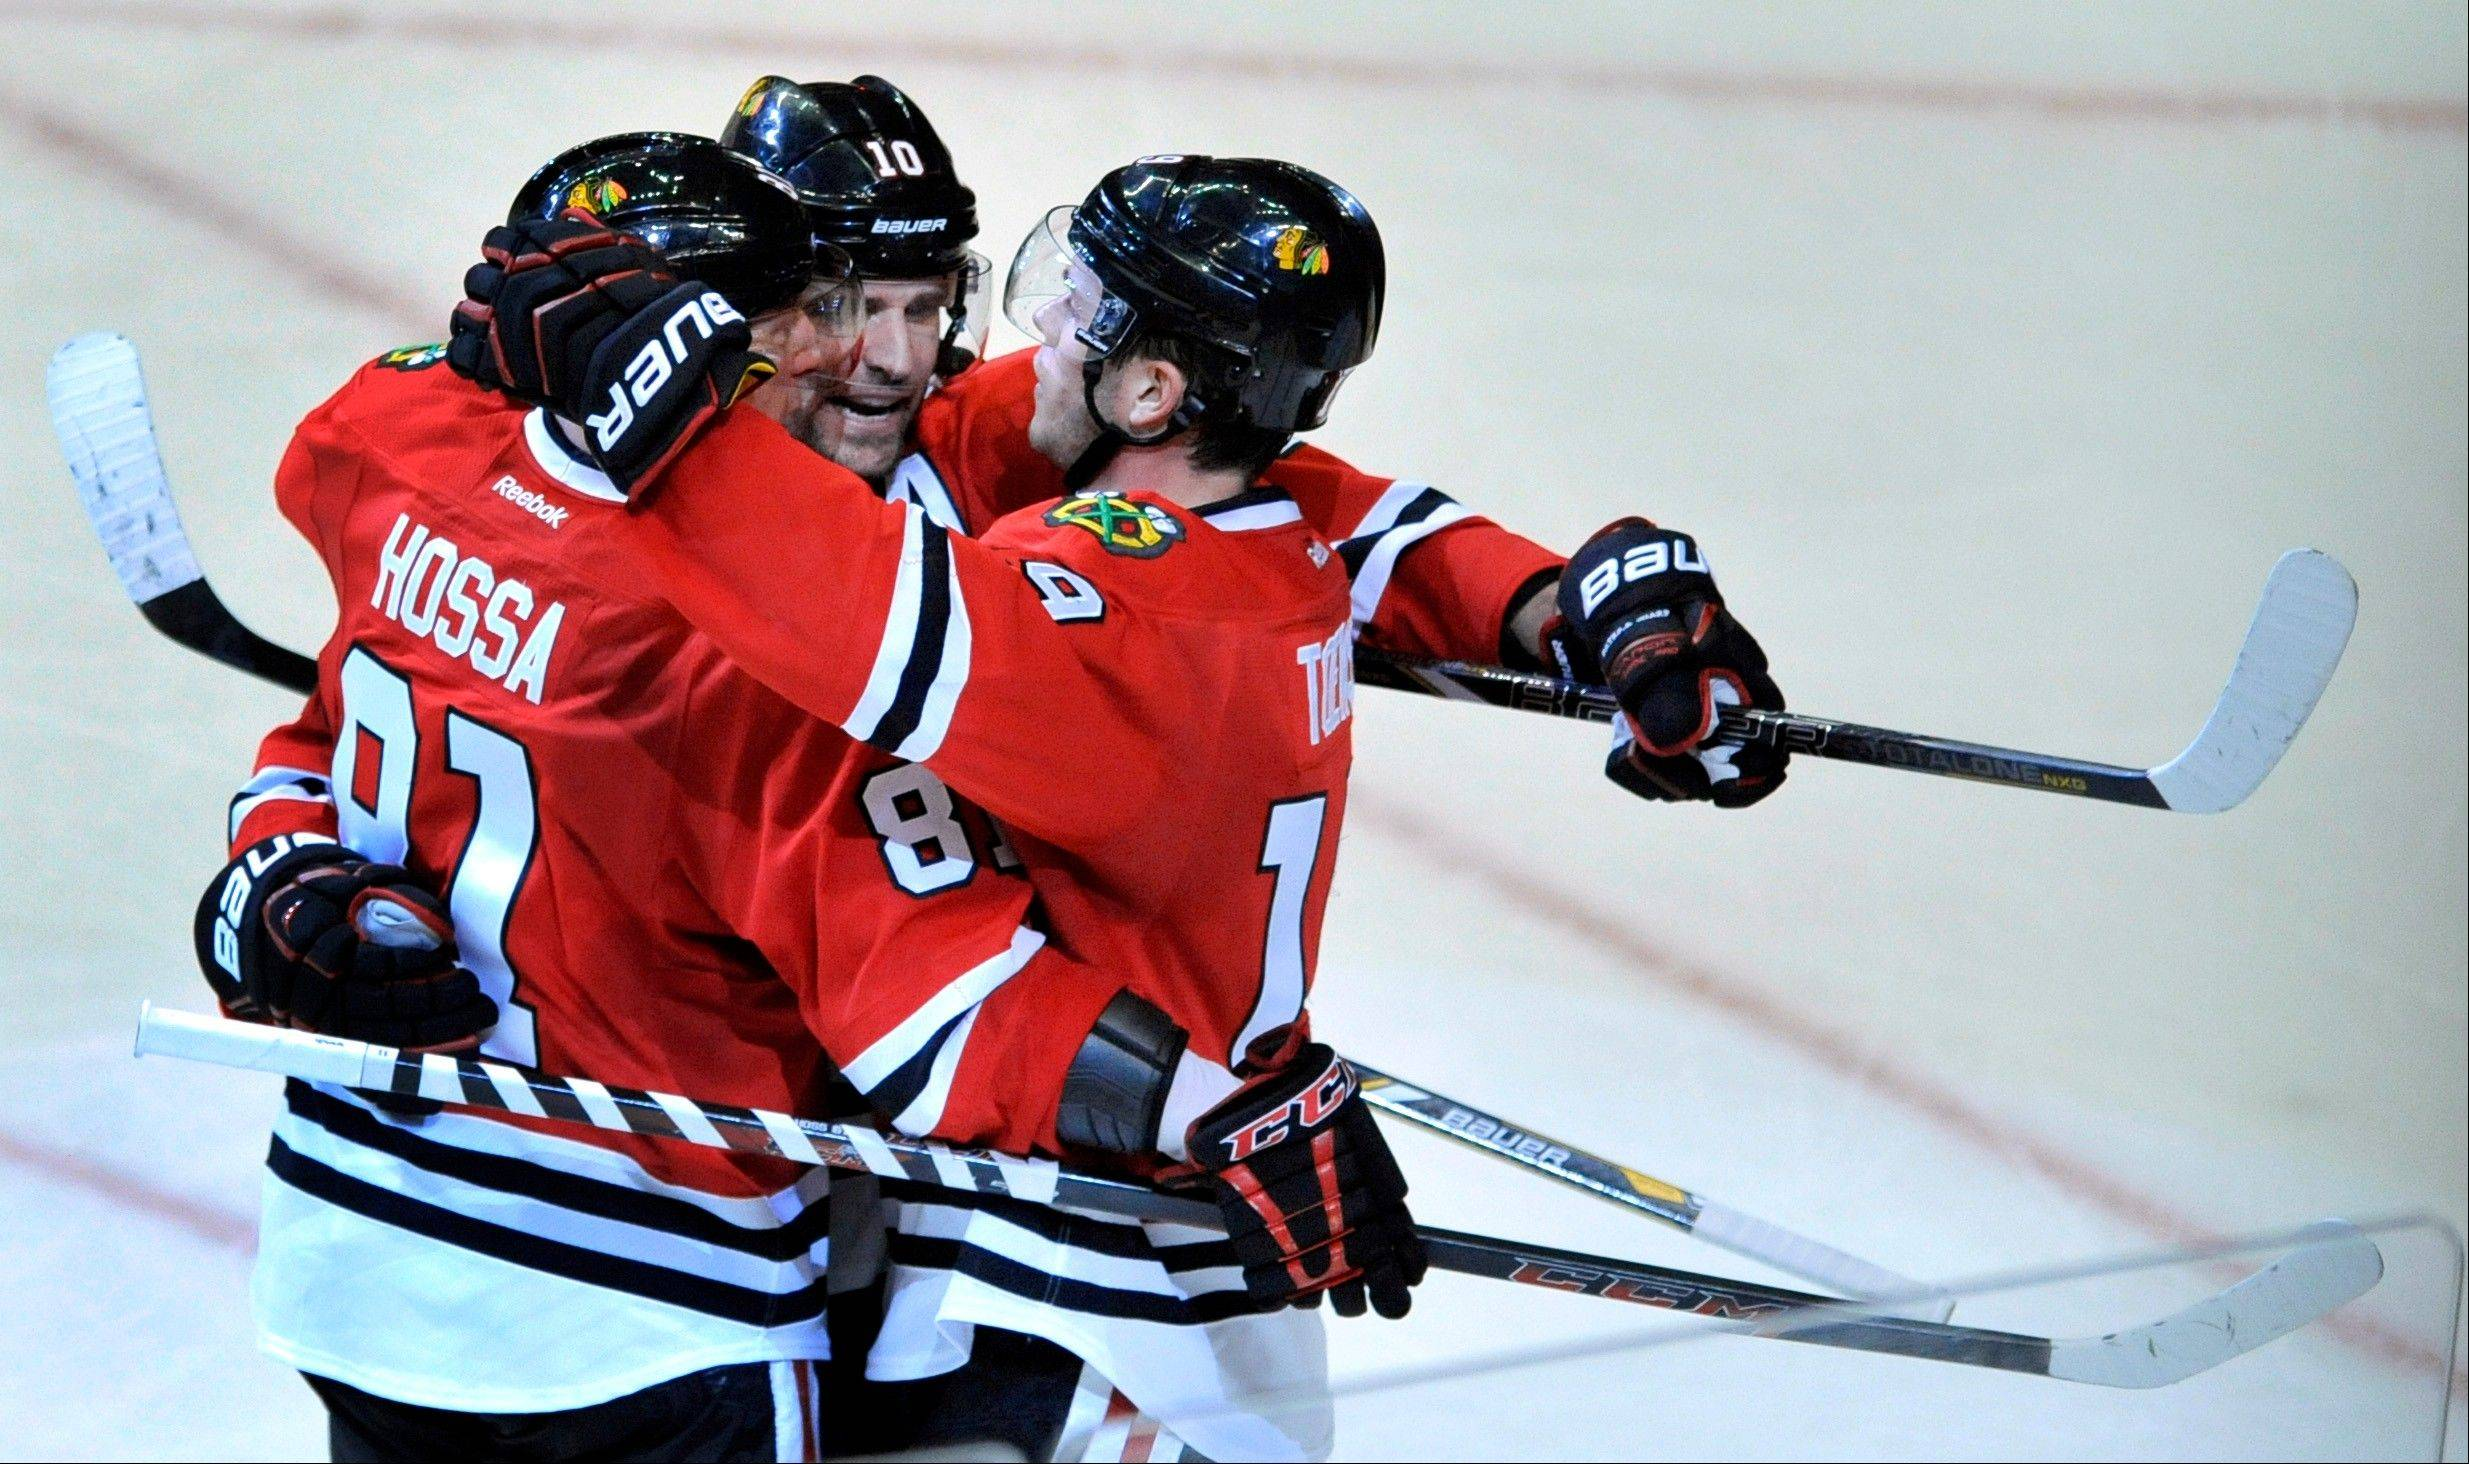 Chicago Blackhawks captain Jonathan Toews (19) celebrates with teammates Patrick Sharp (10) and Marian Hossa (81) after scoring a goal during the second period of an NHL hockey game against the Edmonton Oilers in Chicago, Sunday, Jan., 12, 2014.